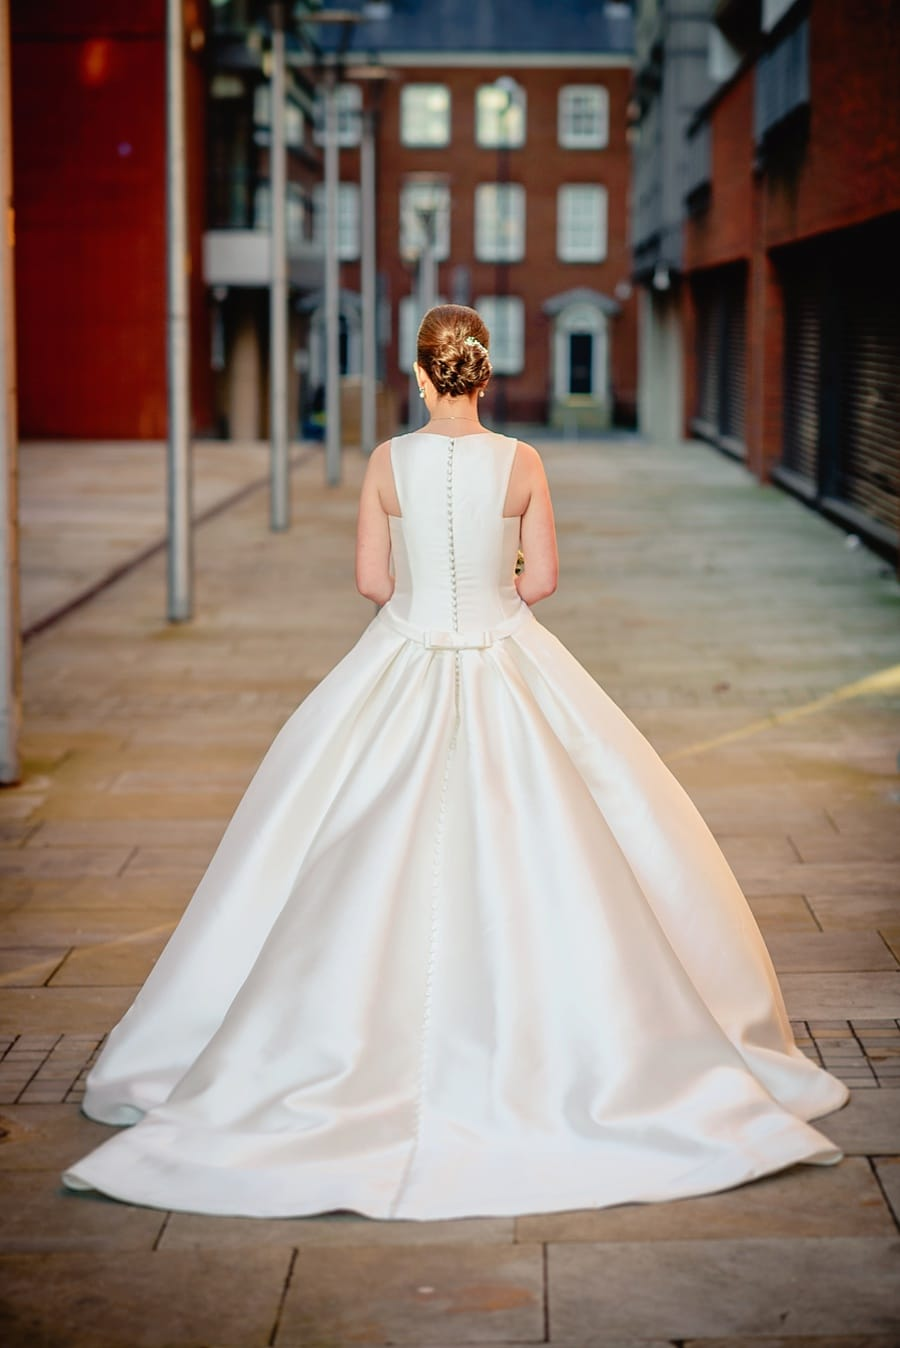 stunning wedding dress photo outside great john street hotel